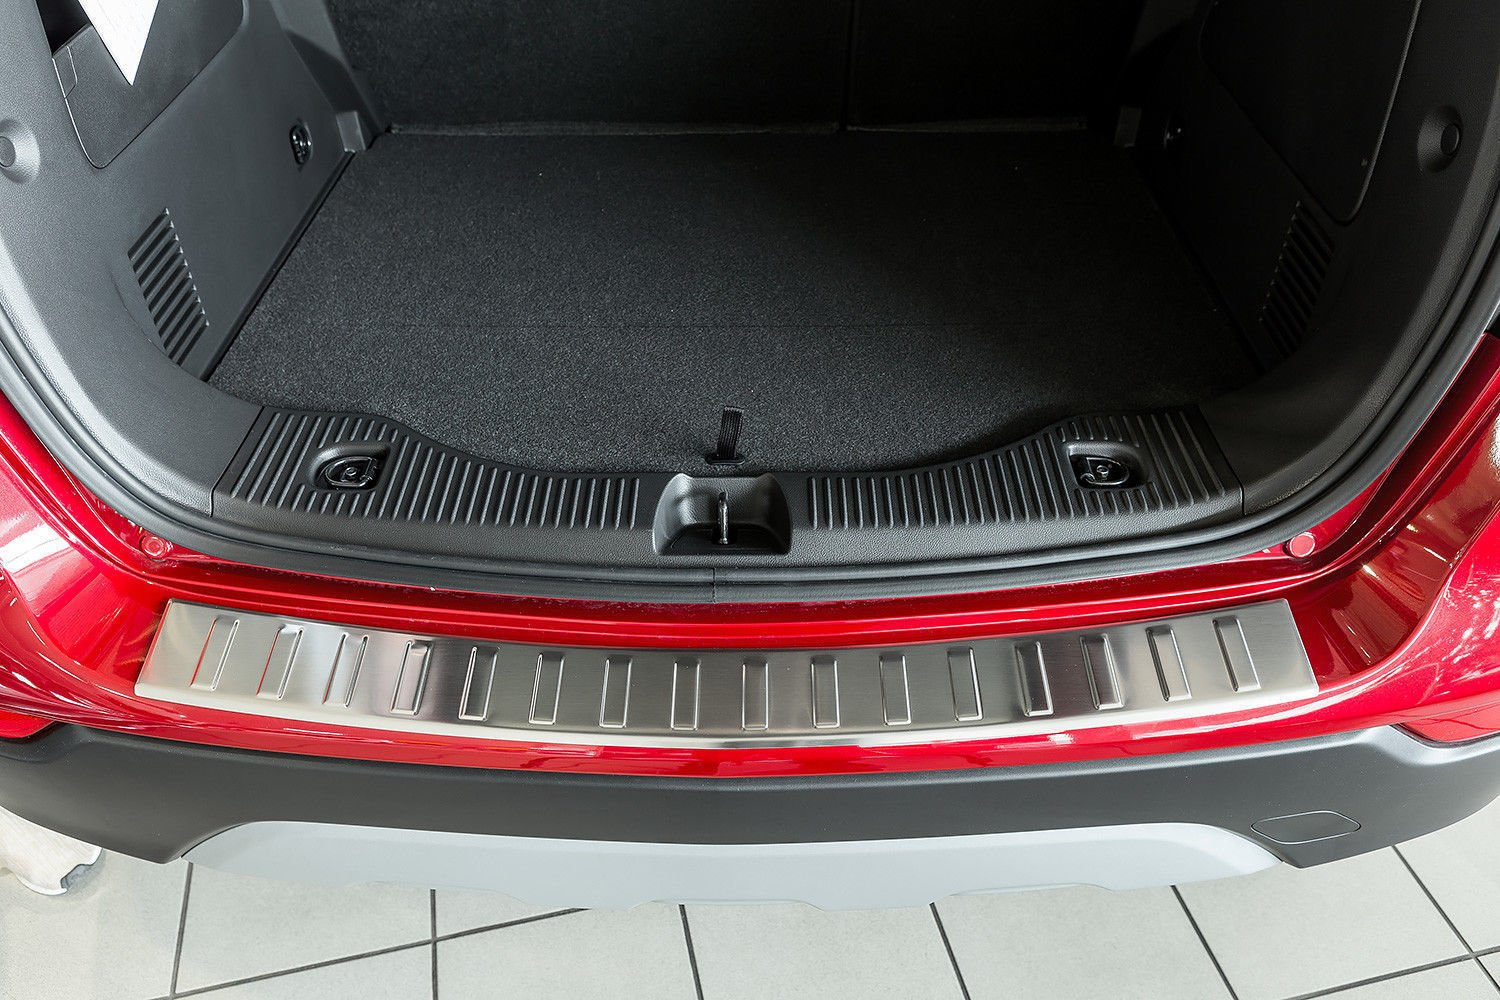 Stainless Steel Chrome Rear Bumper Protector Scratch Guard